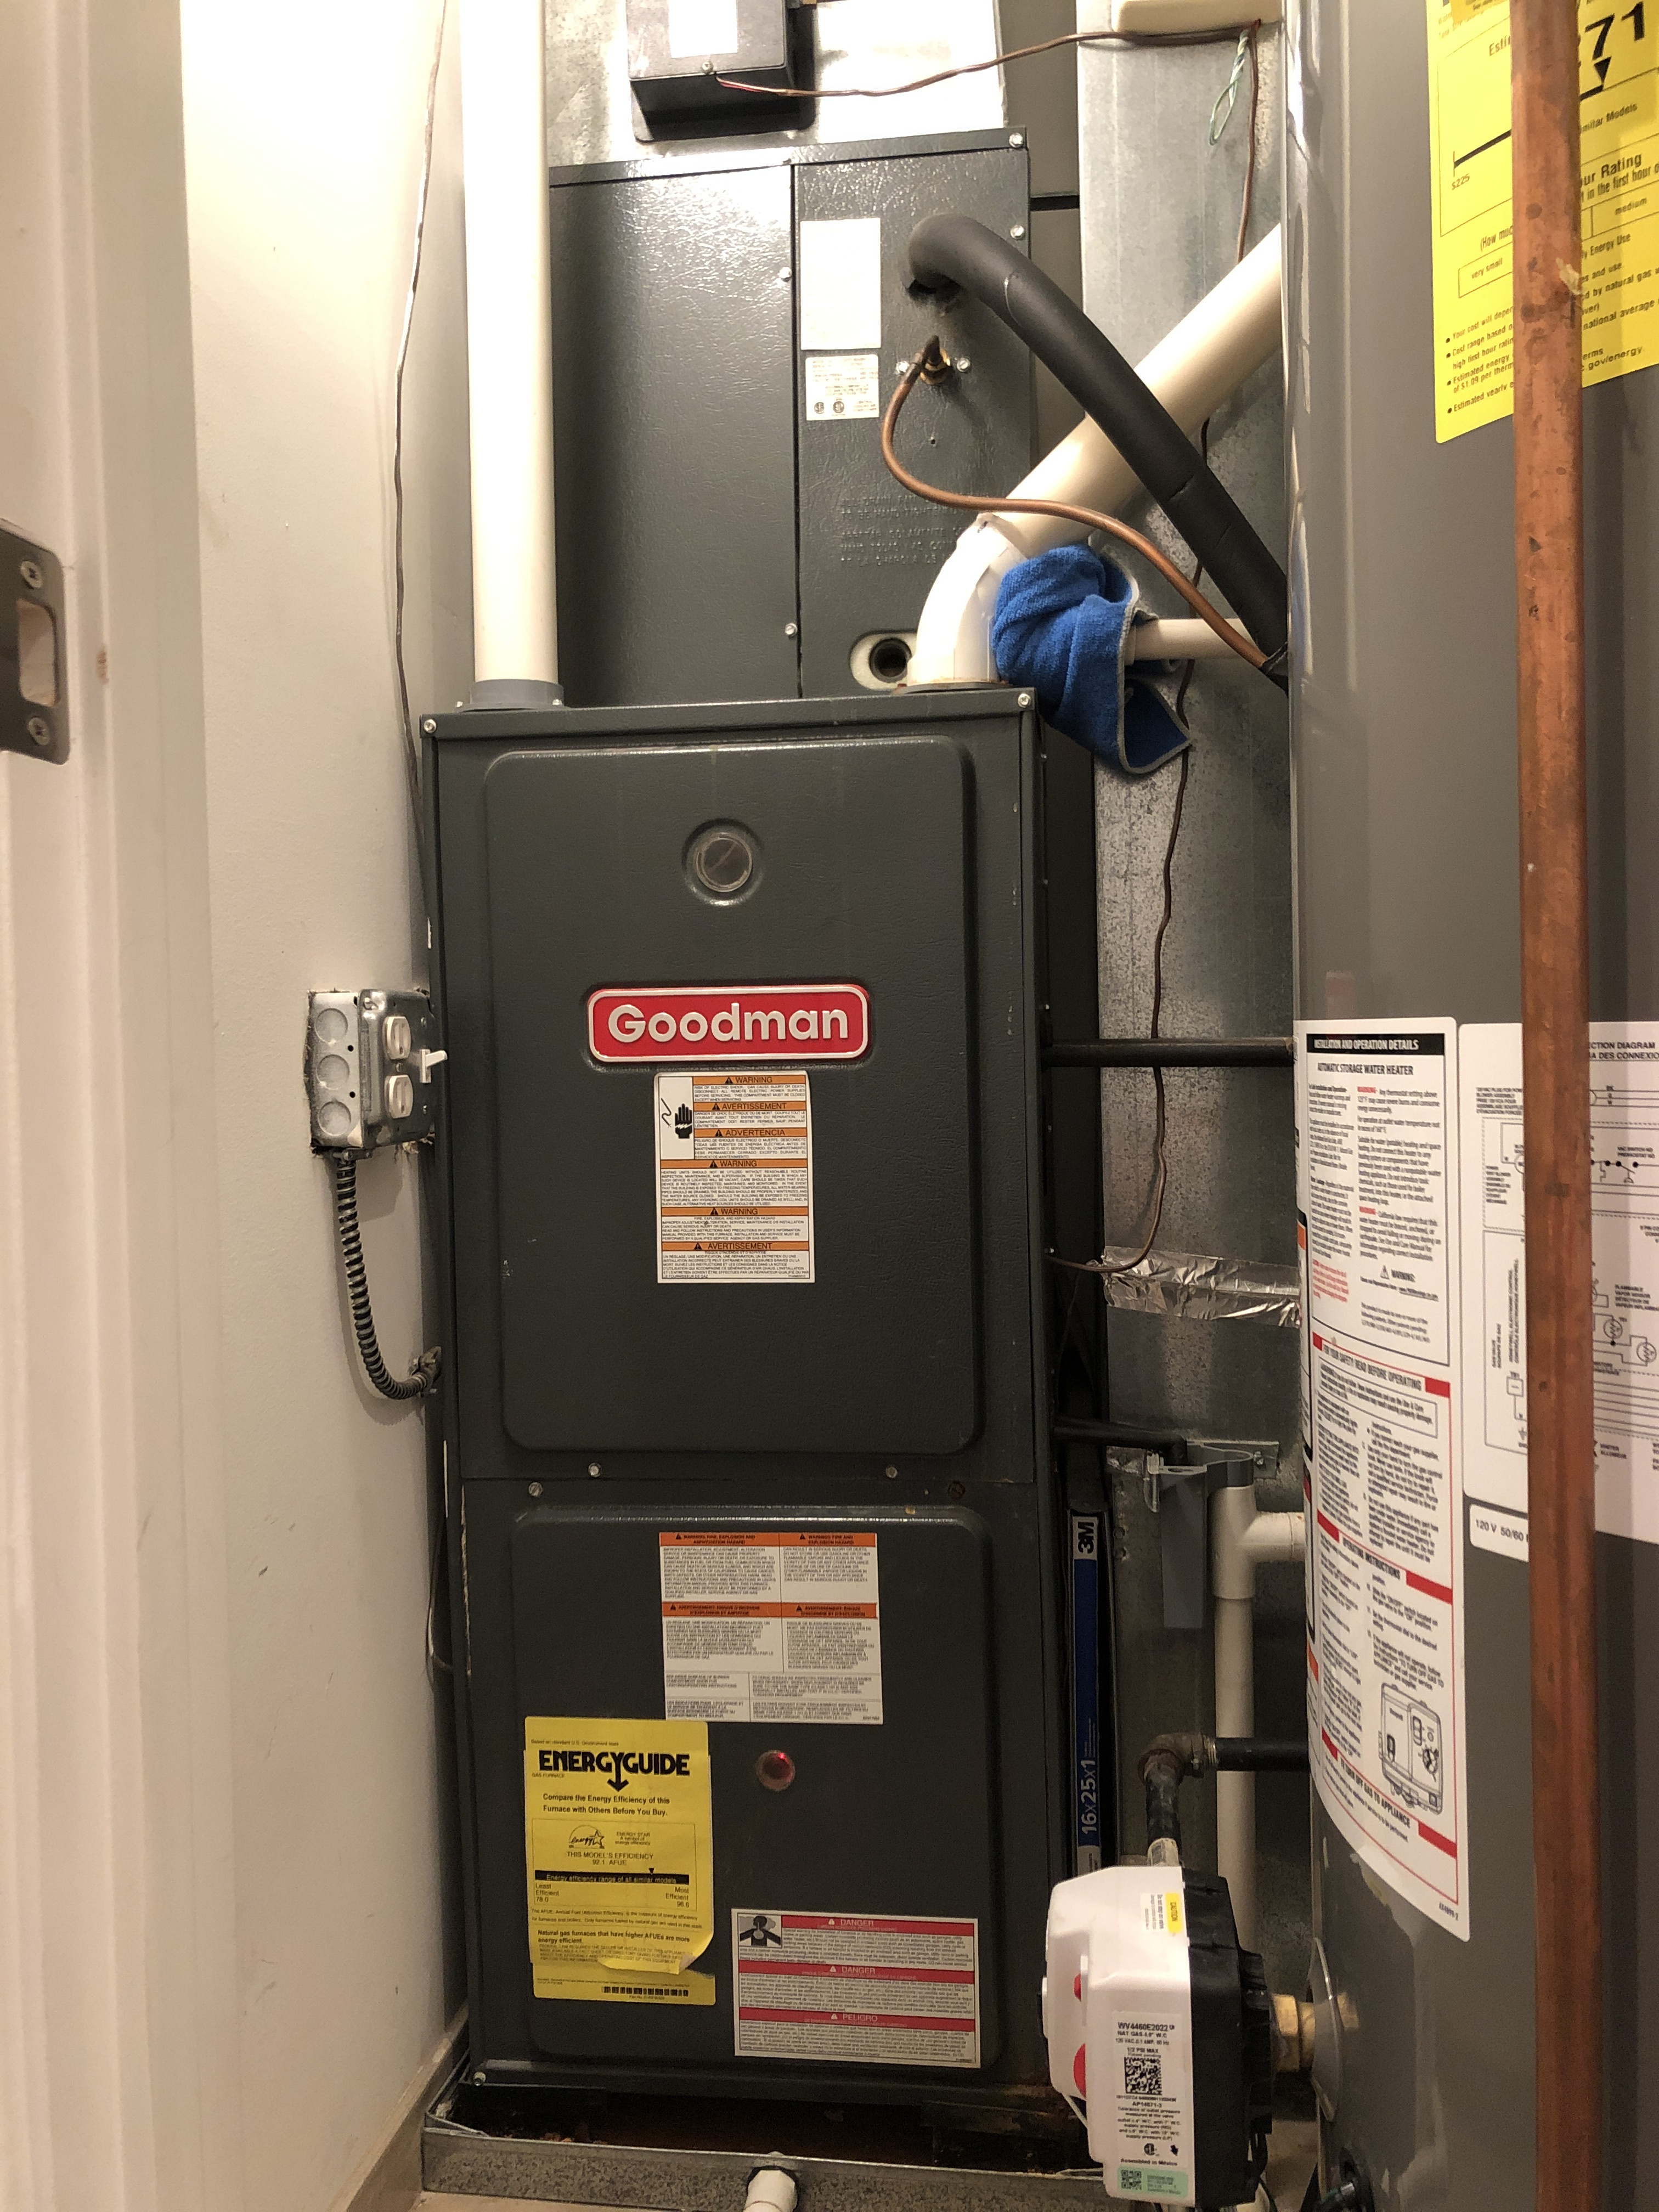 Arrived on call for no heat and thermostat issue. Found furnace in rollout lockout. Cycled unit after resetting and didn't see any flame issues present. Took reading on everything. Also found coil plugged causing a high limit issue. Recommended customer on replacing unit over coil due to age.